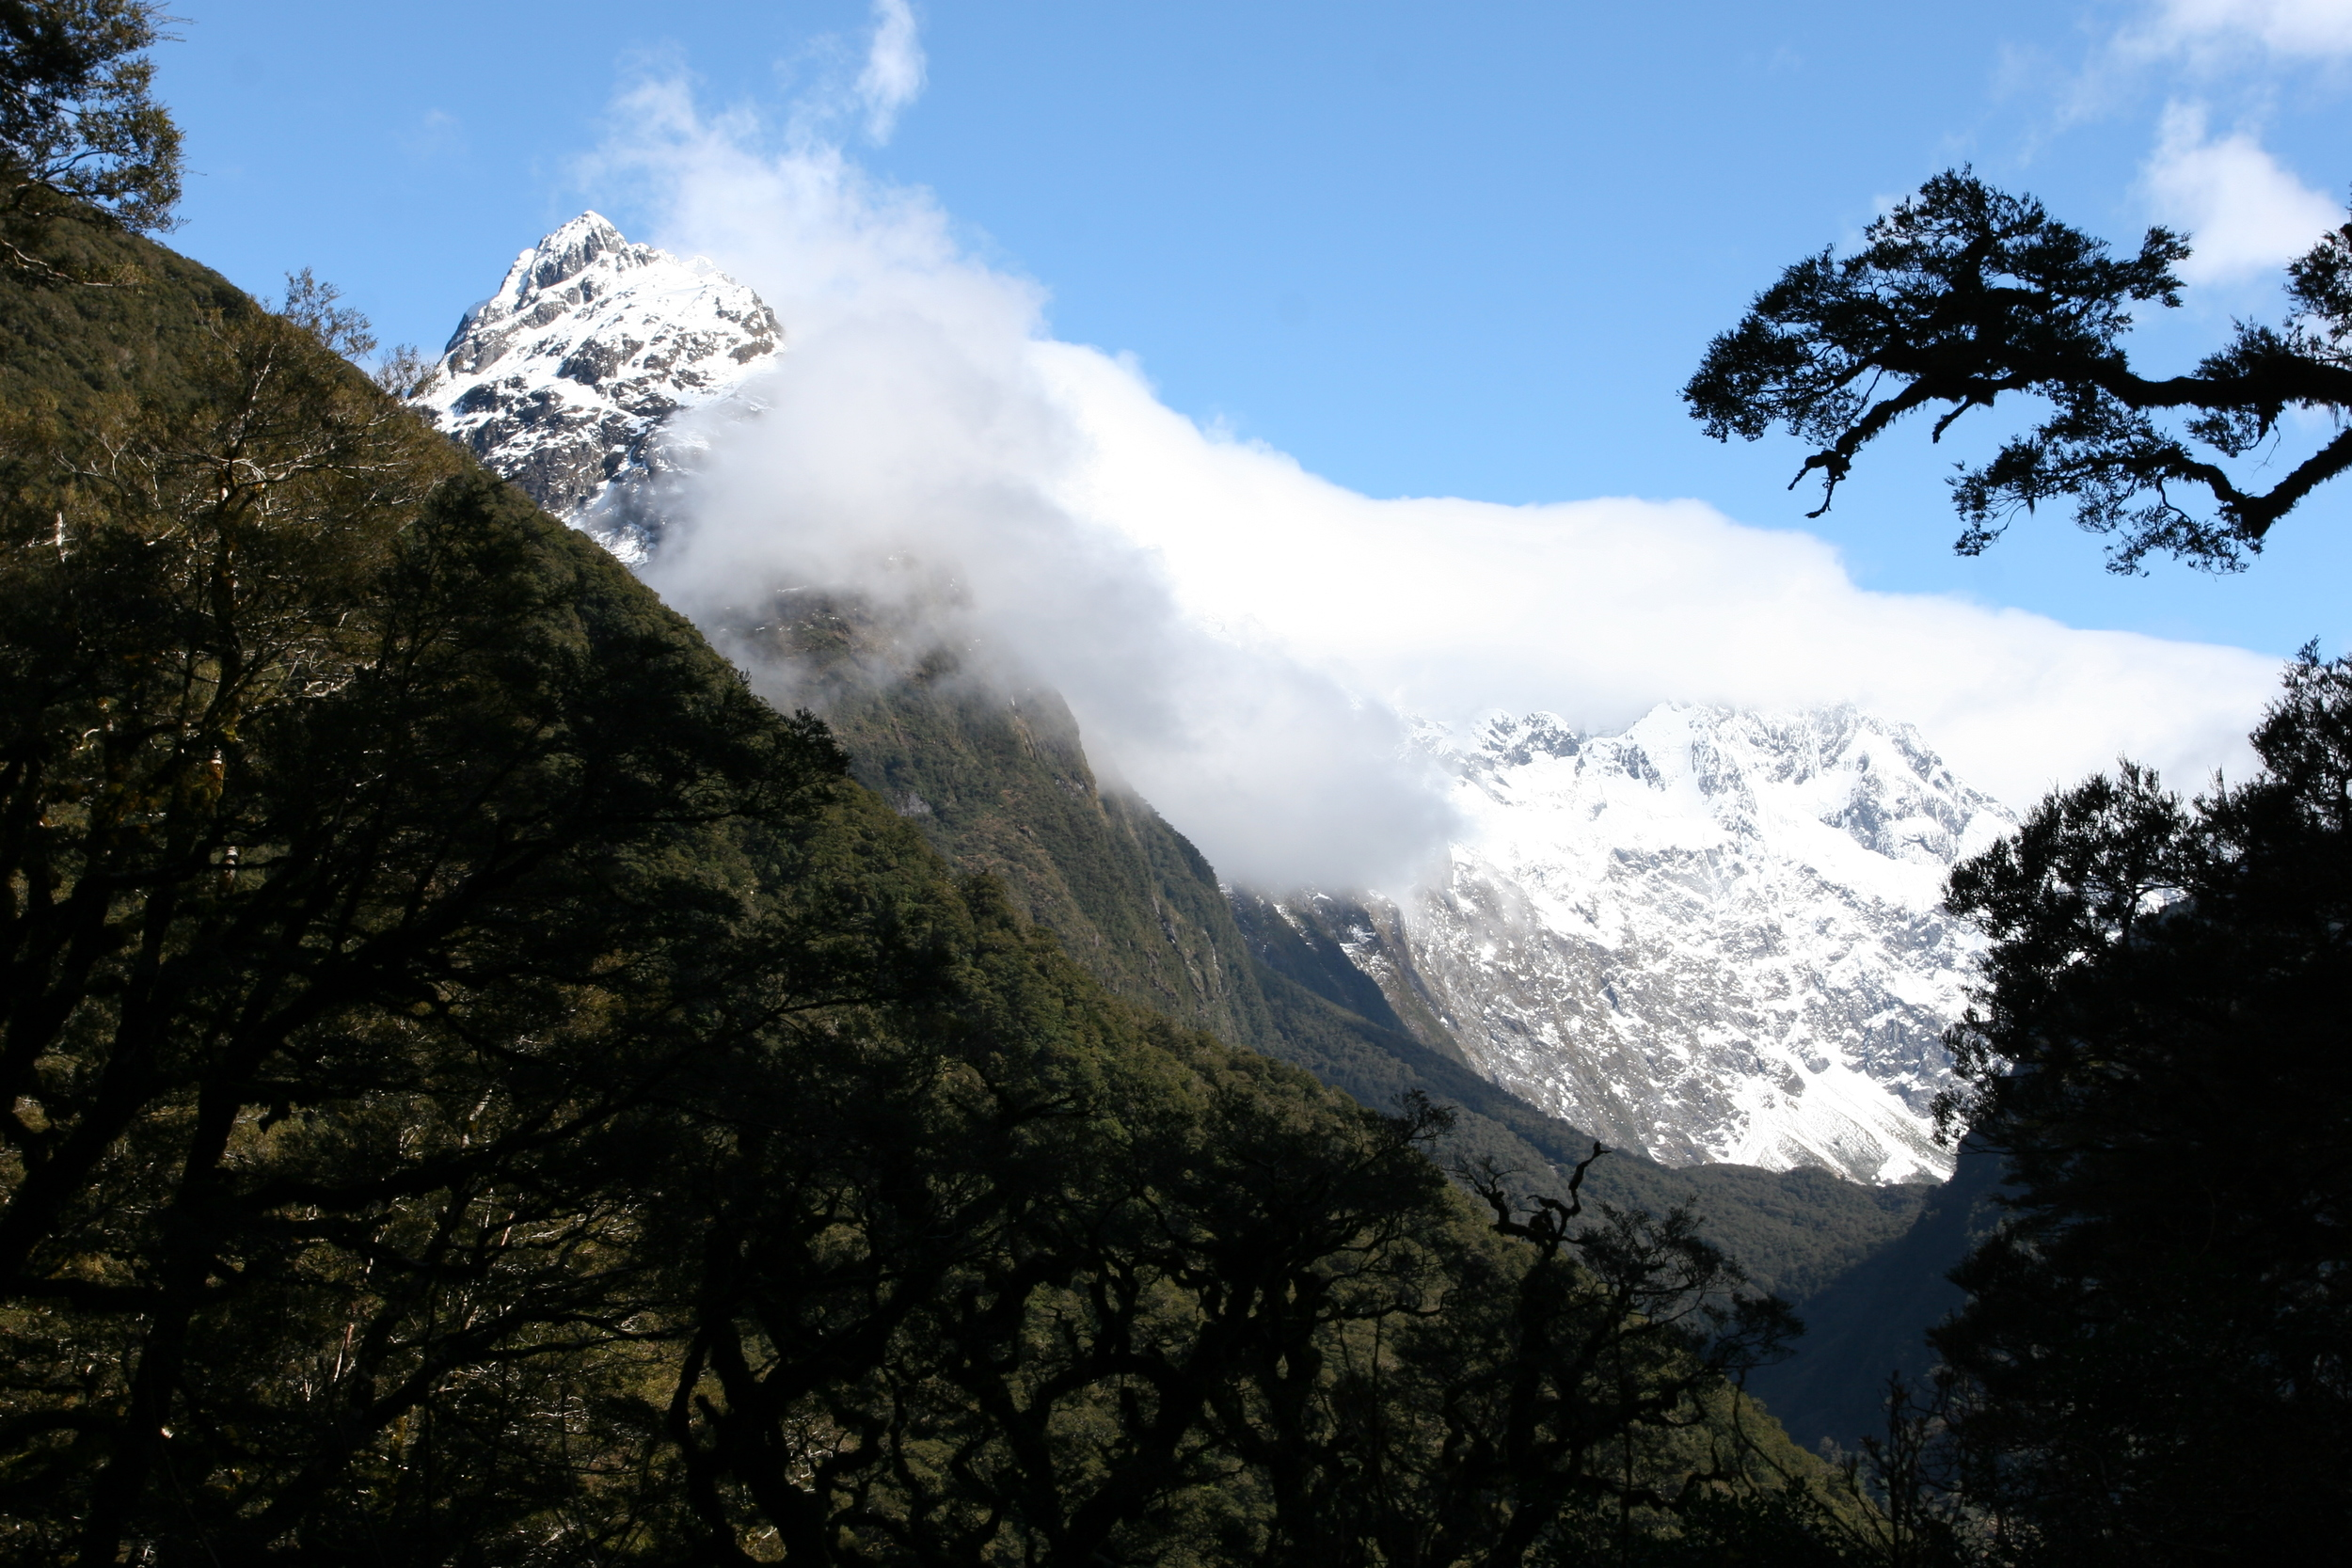 Beech Forest looking out on New Zealand's Southern Alps at the start of Routeburn Track